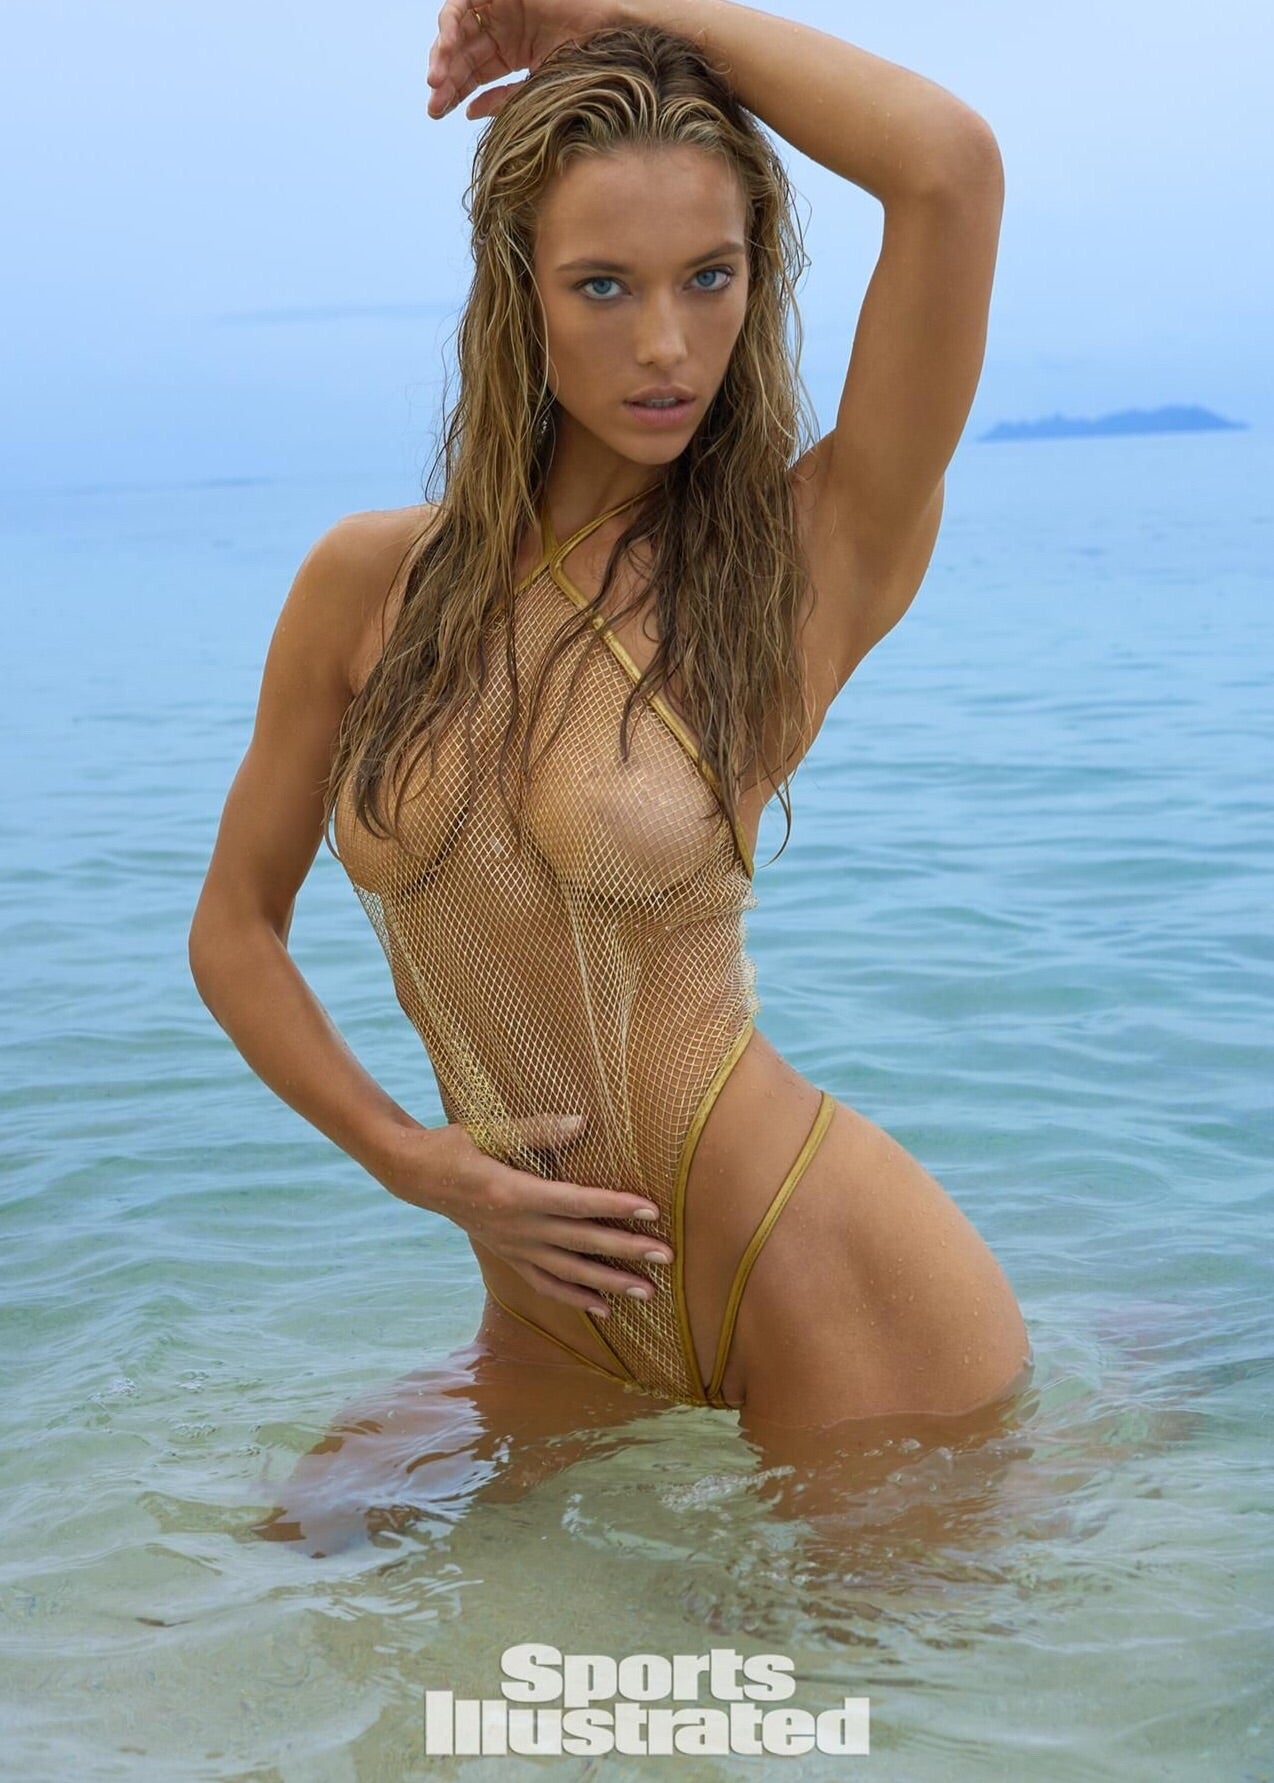 Hannah Ferguson - Sports Illustrated Swimsuit 2017 - Gabriela Pires Beachwear